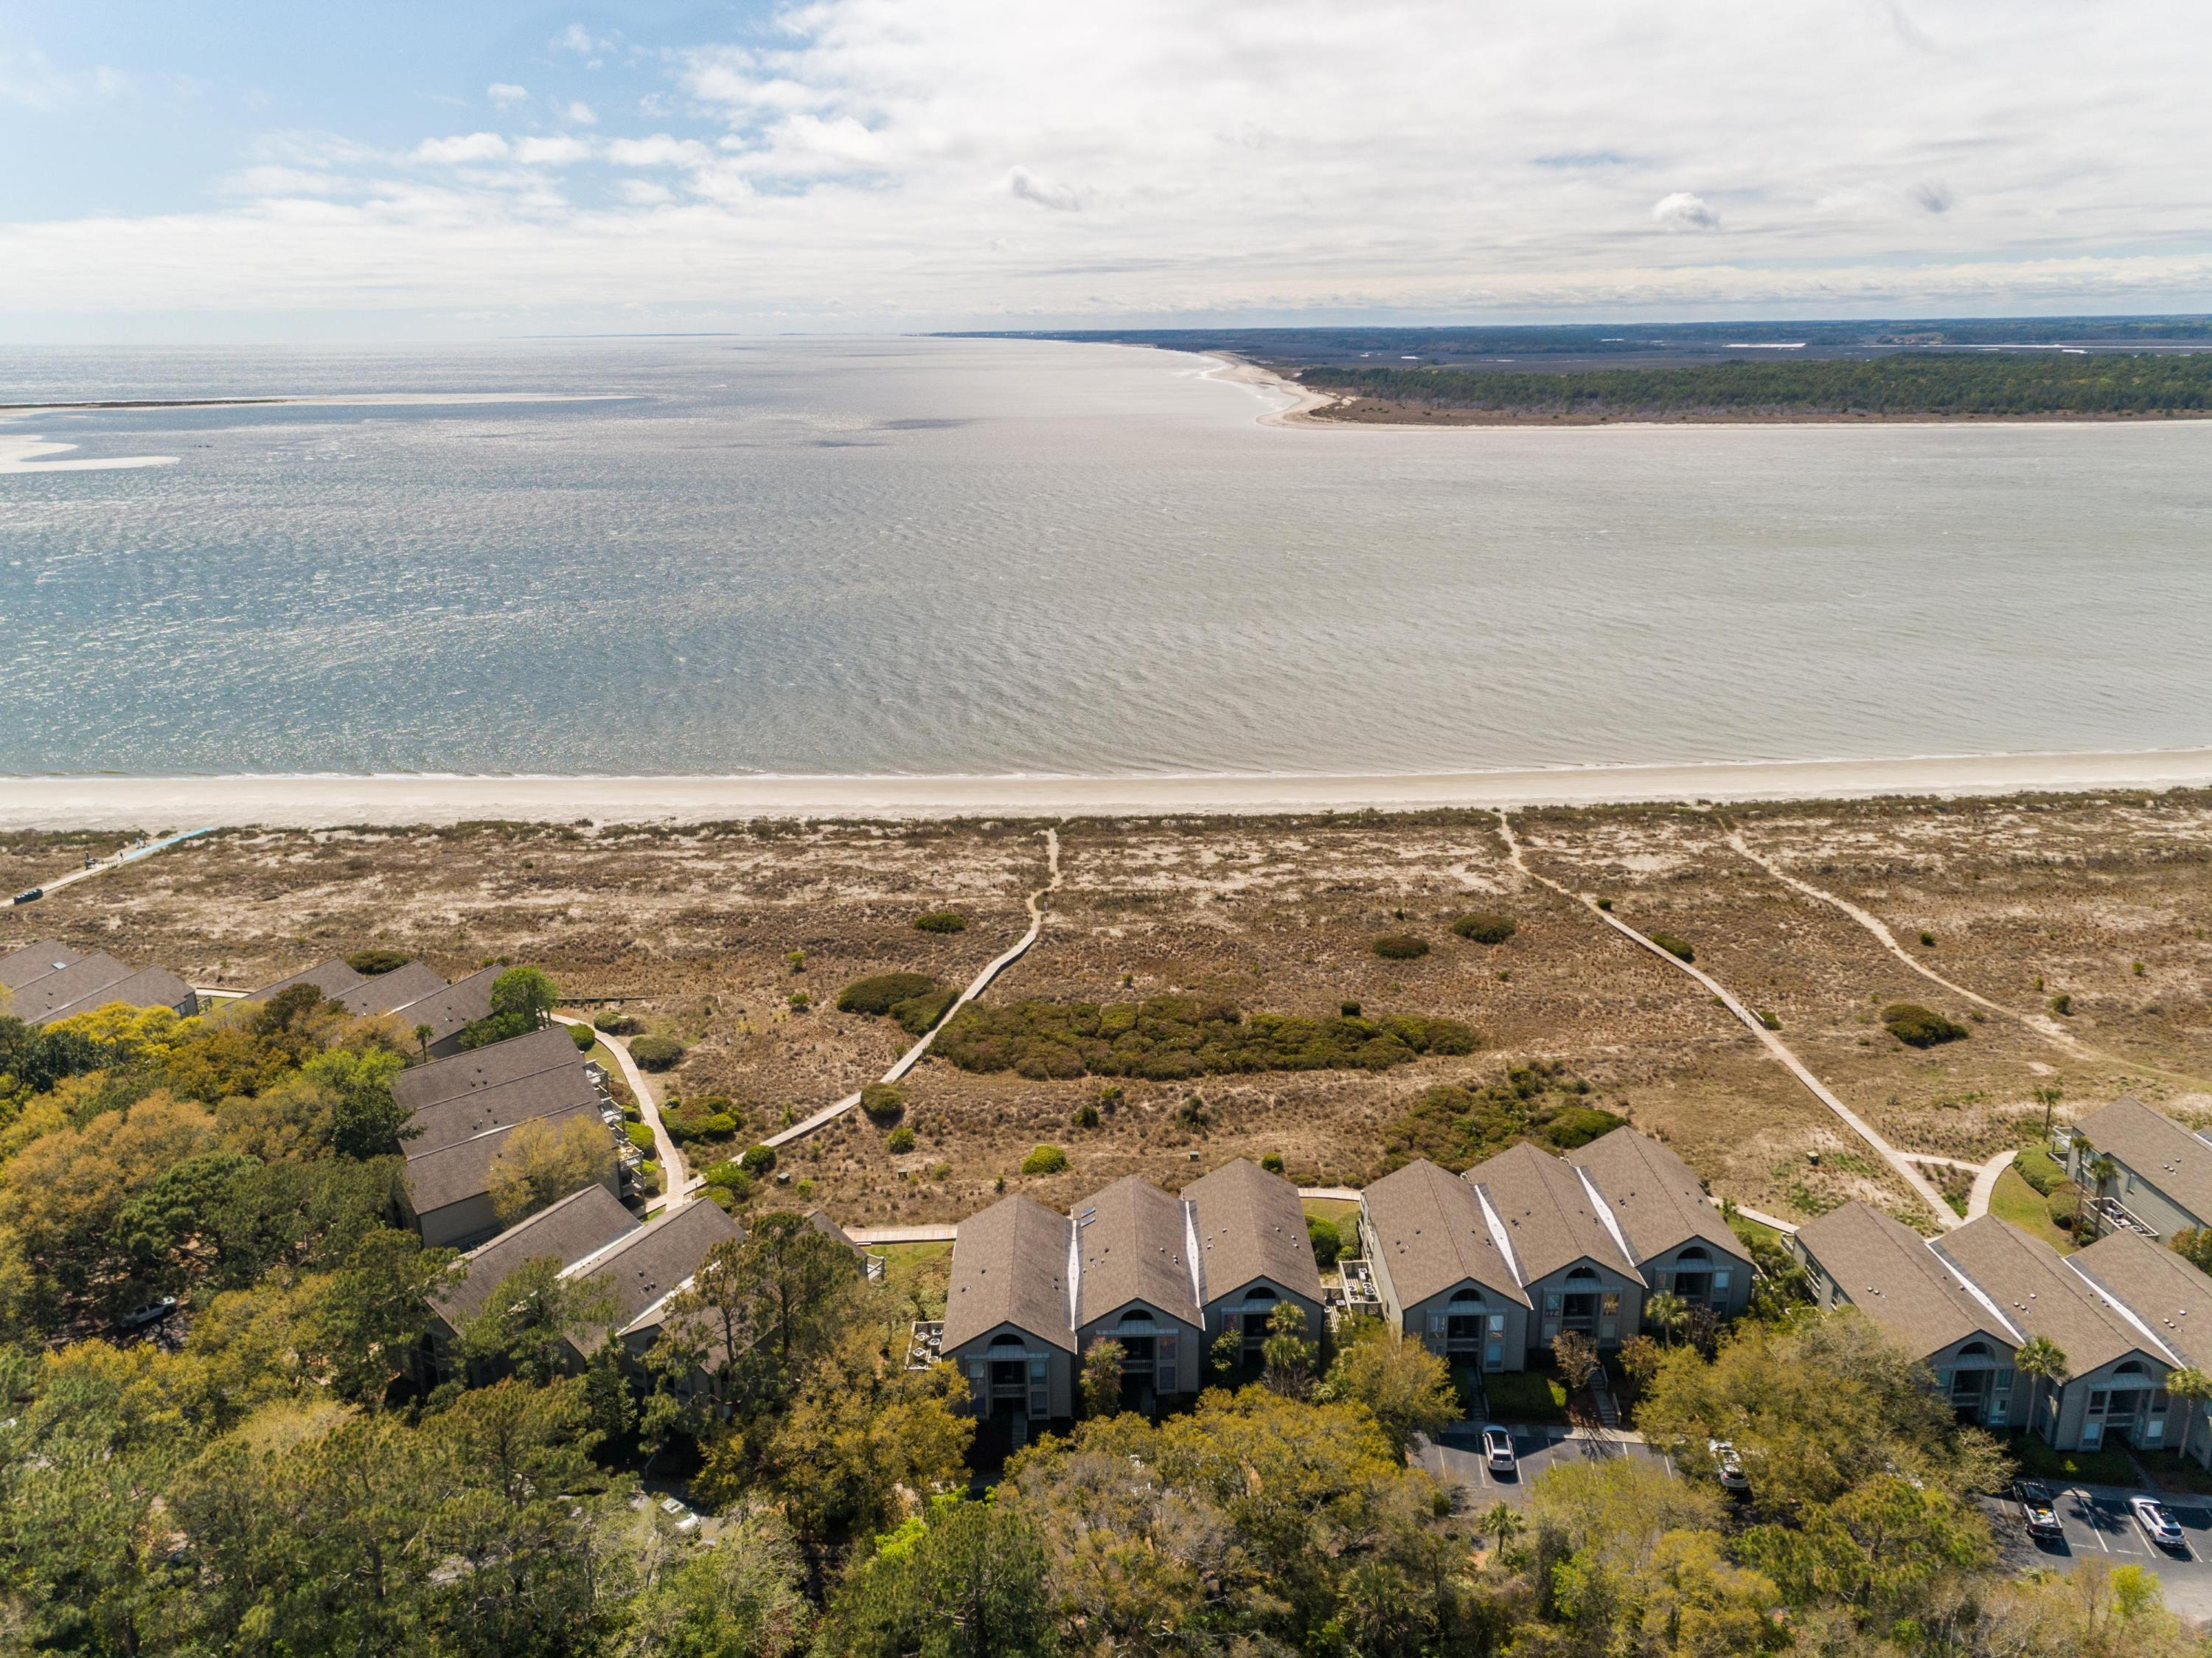 1365 Pelican Watch Villa Seabrook Island, SC 29455